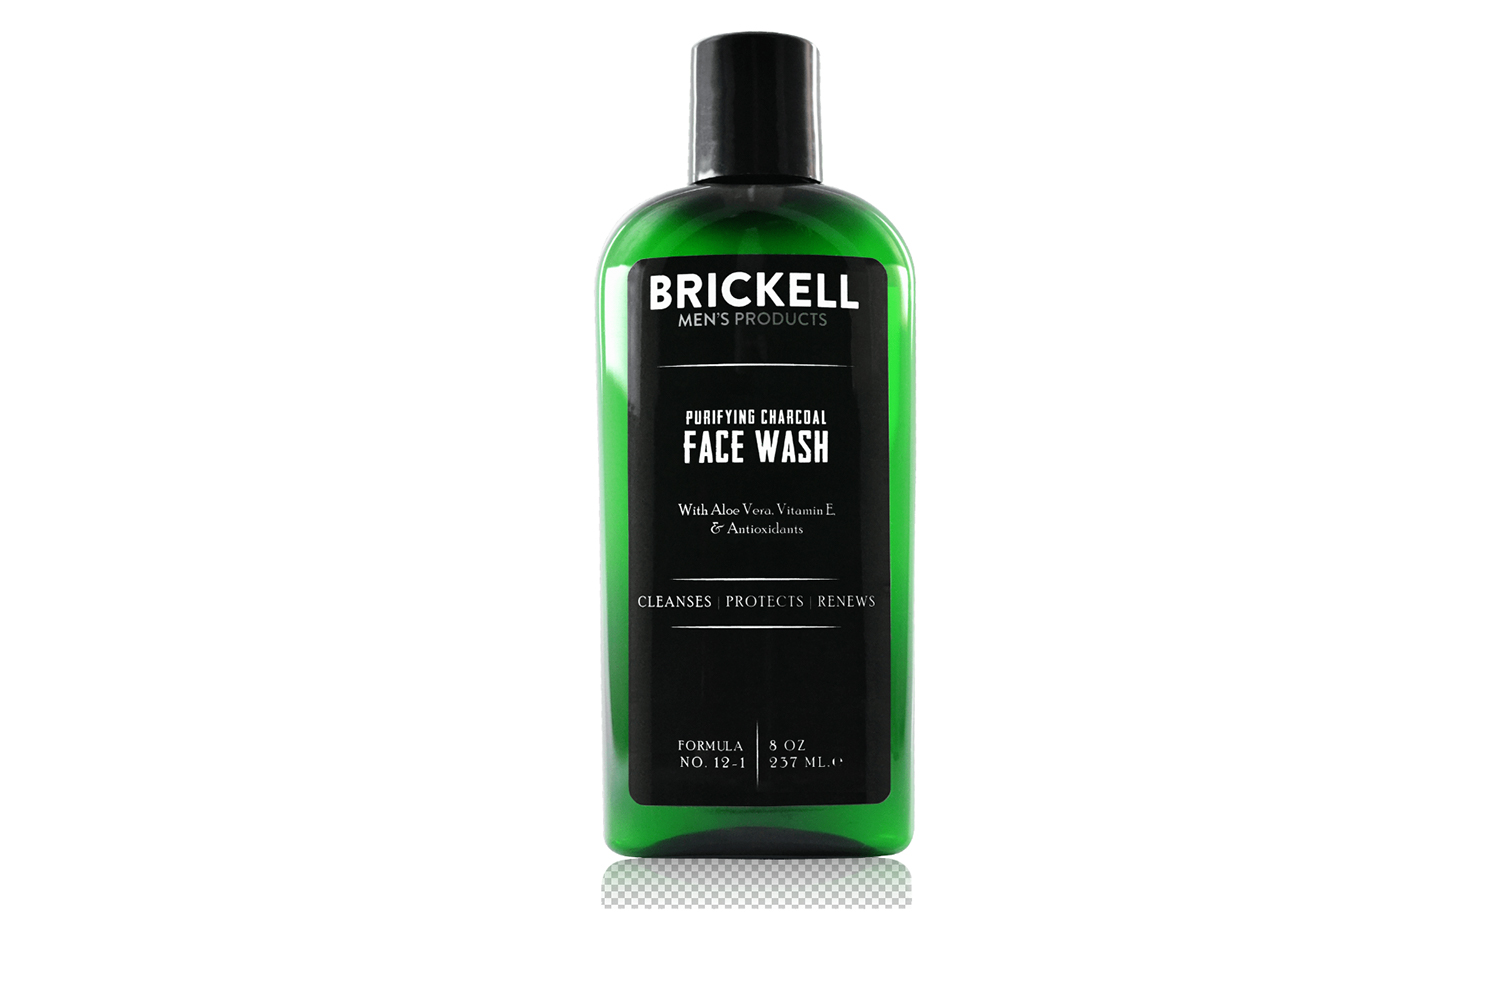 Brickell Men's Face Wash